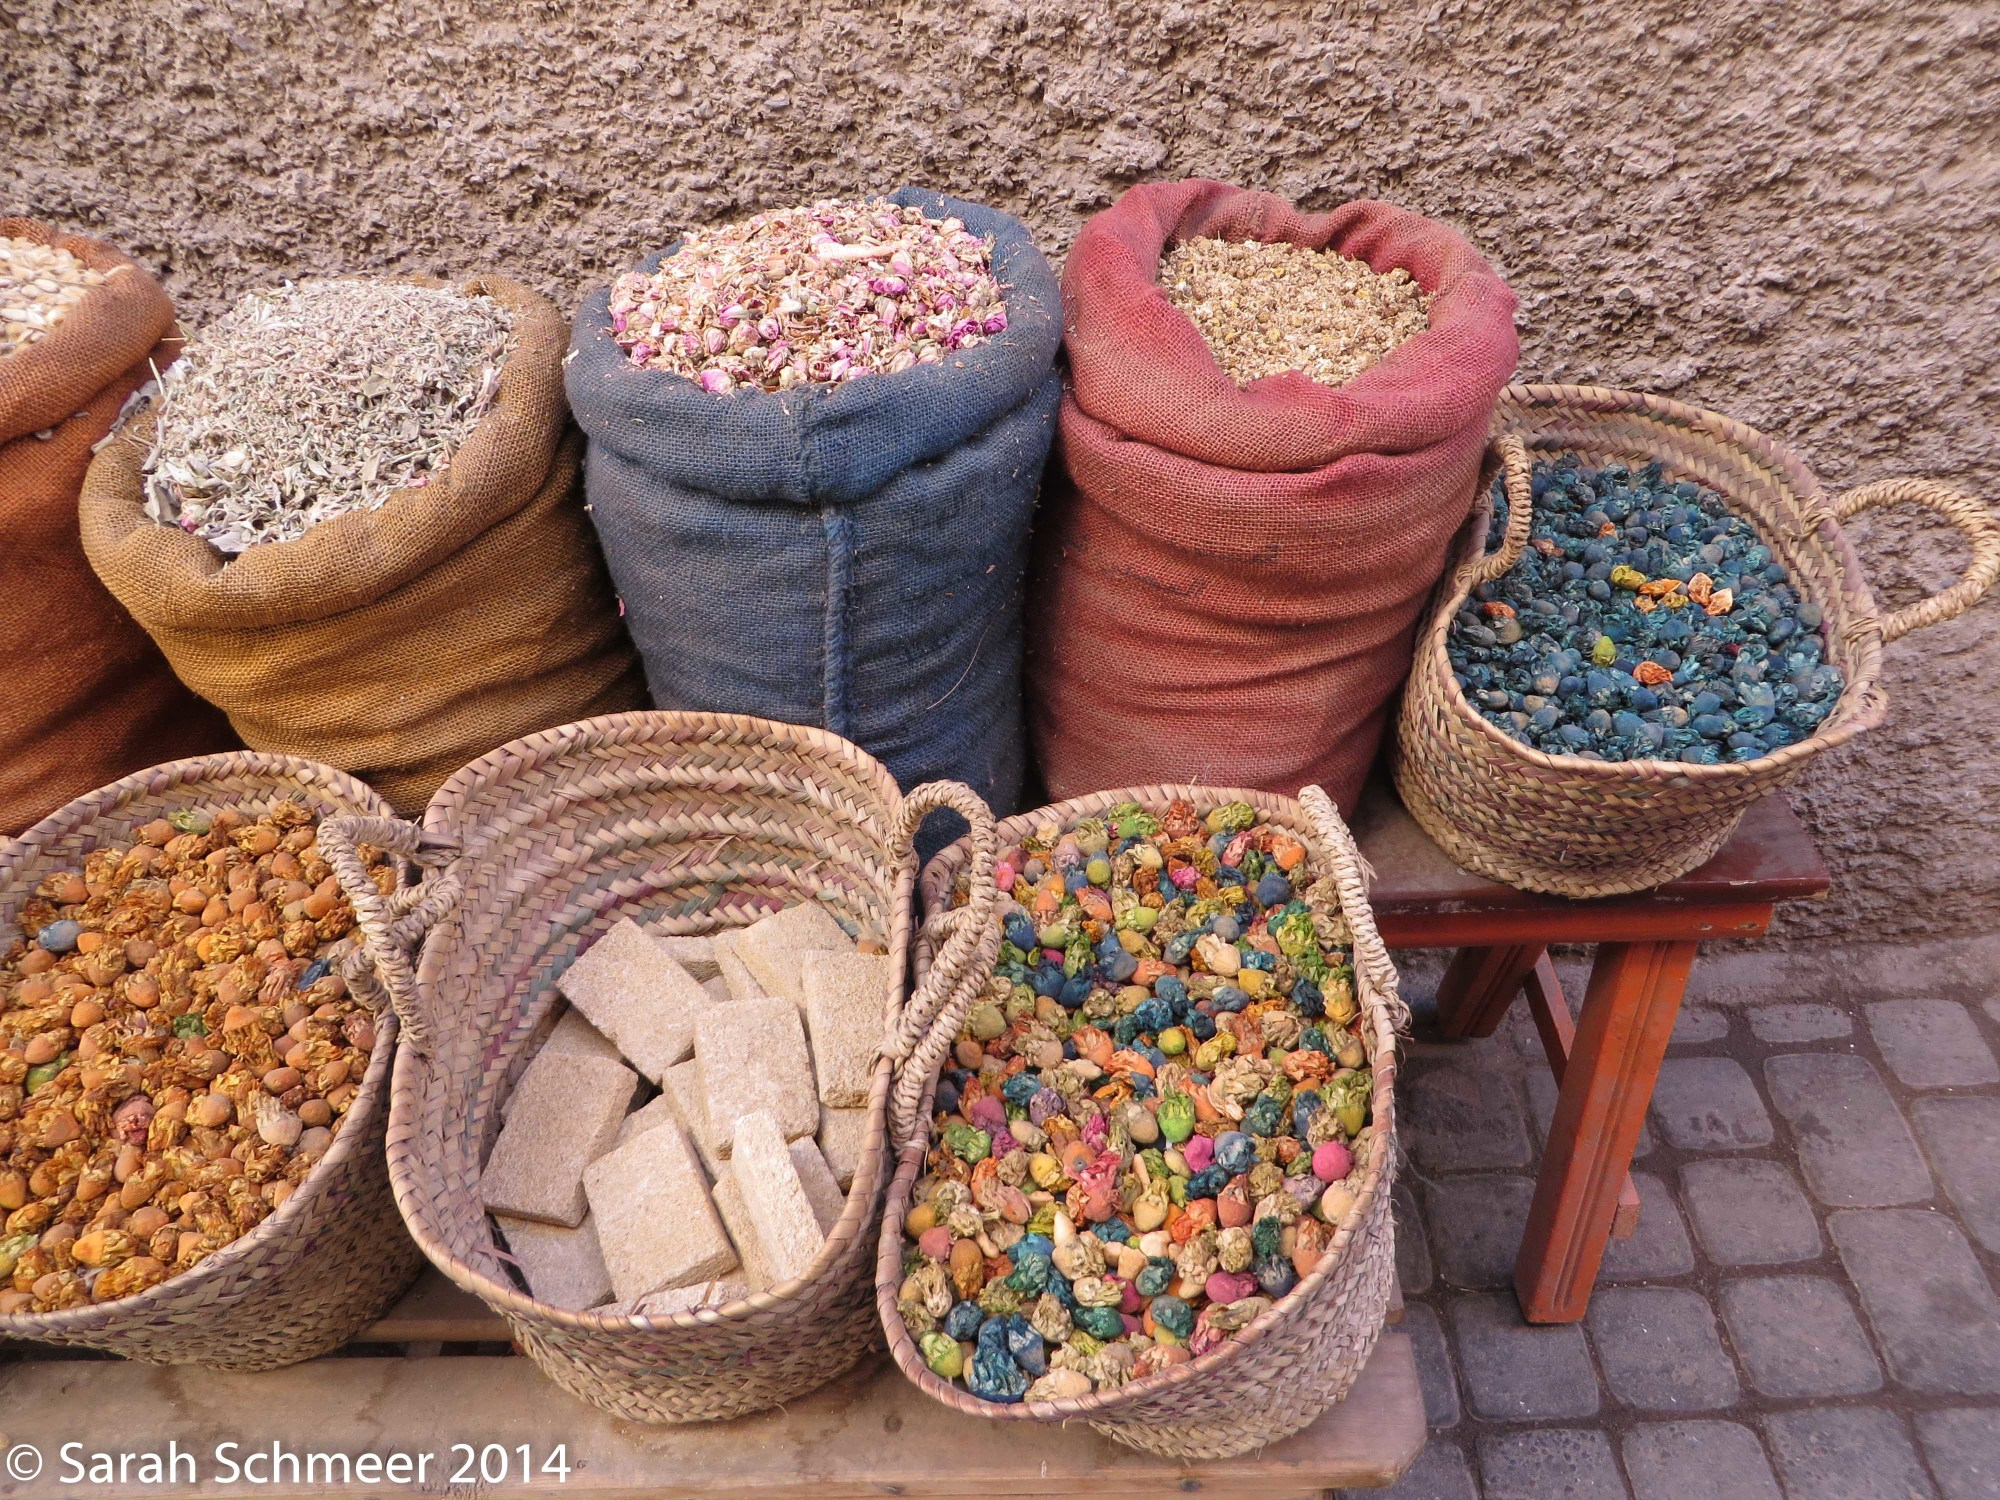 Colorful goods for sale in Morocco